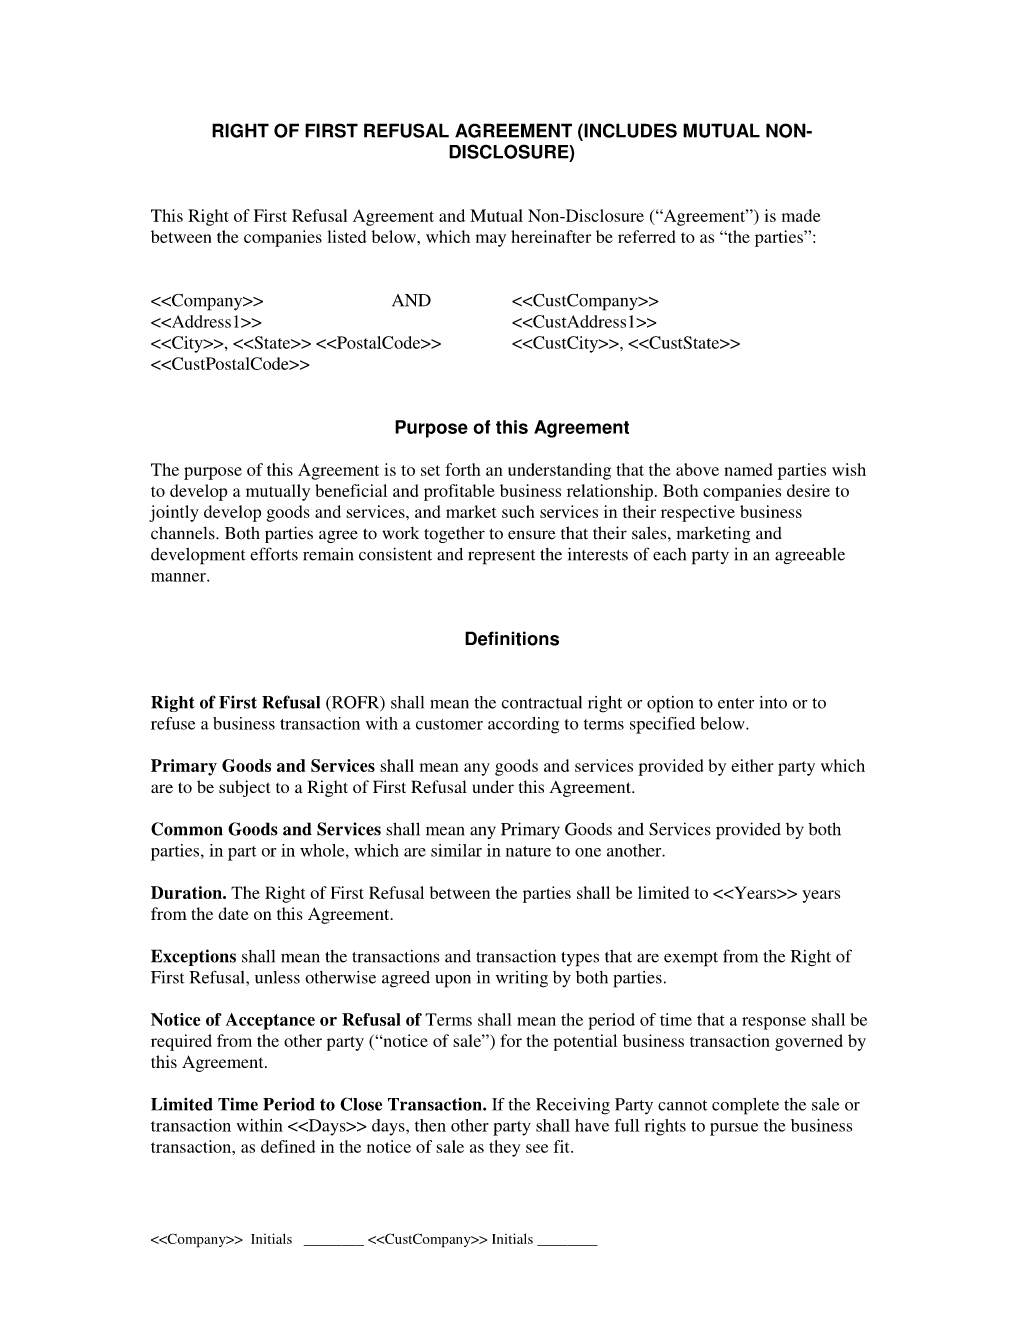 NonDisclosure Agreement Confidentiality Agreement Sample For – Sample Confidentiality Agreement